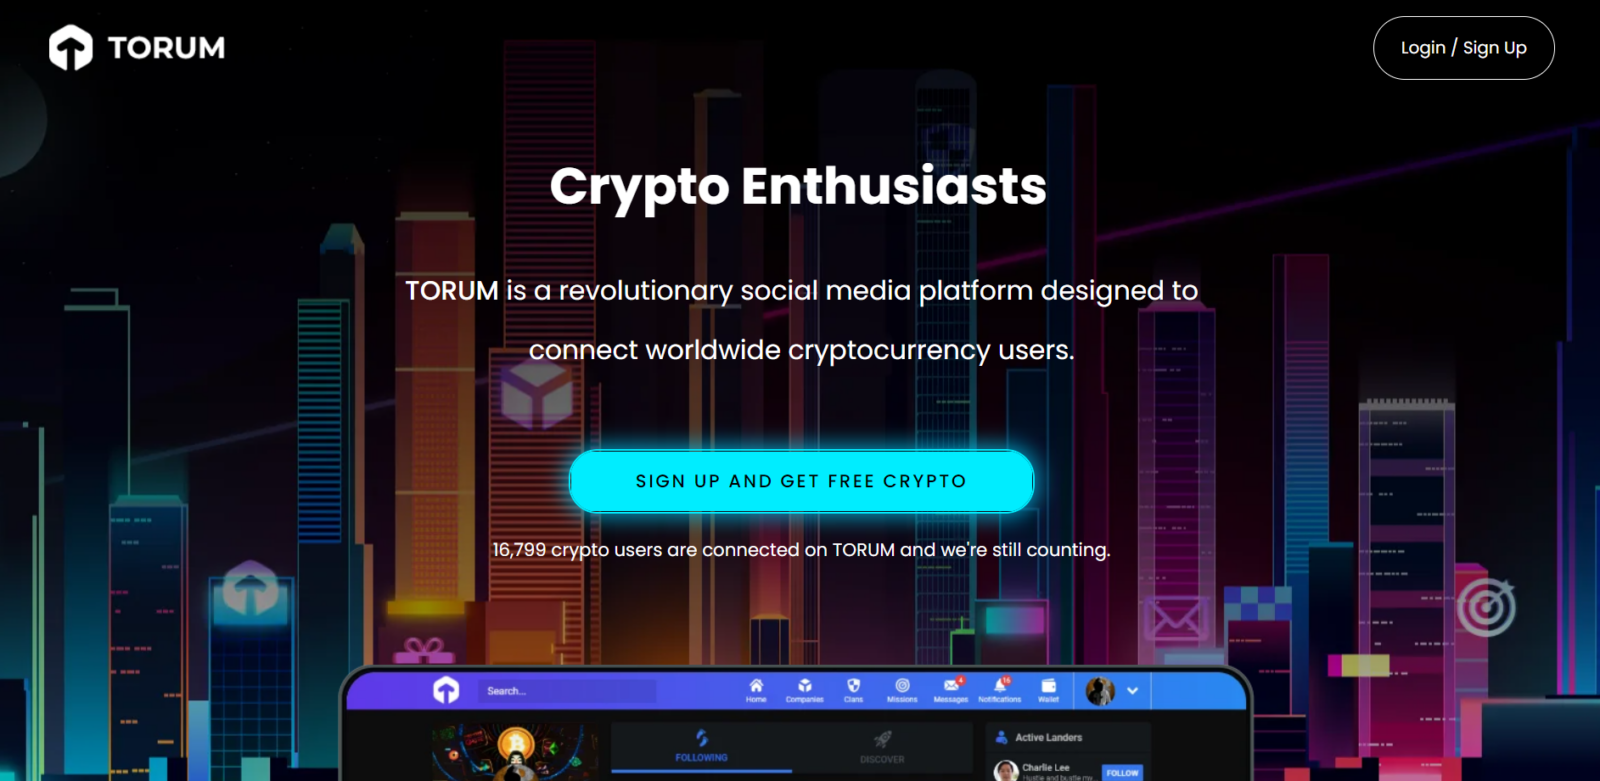 Torum: A Social Media That Pays Crypto